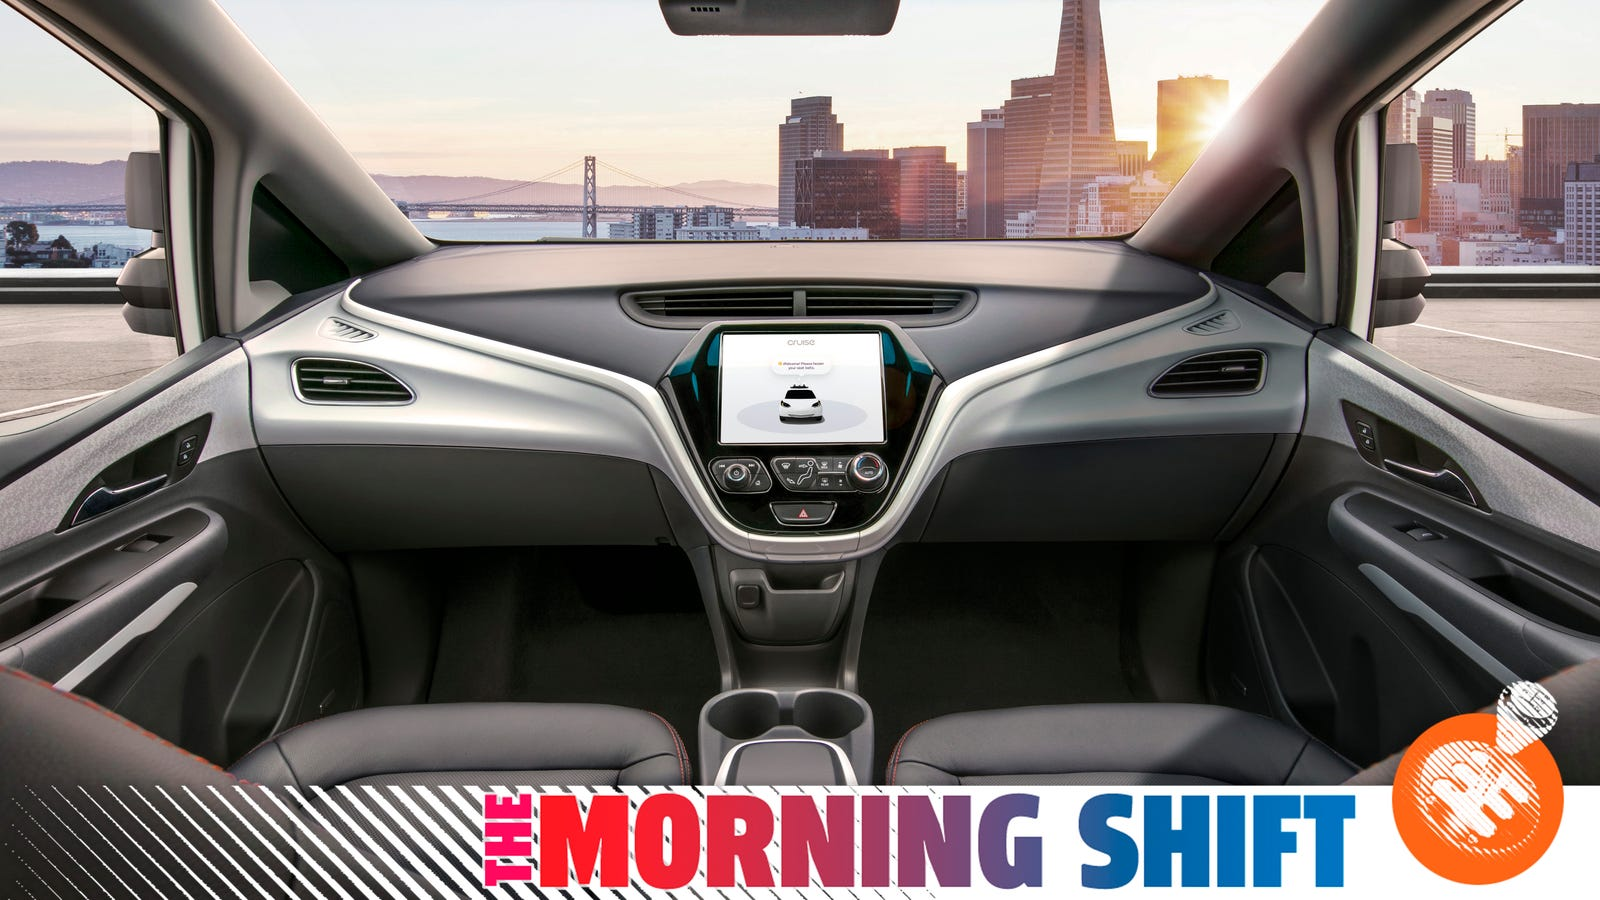 The First GM Cruise 'Autonomous' Car With No Pedals Or Steering Wheel Is Just About Here: Report